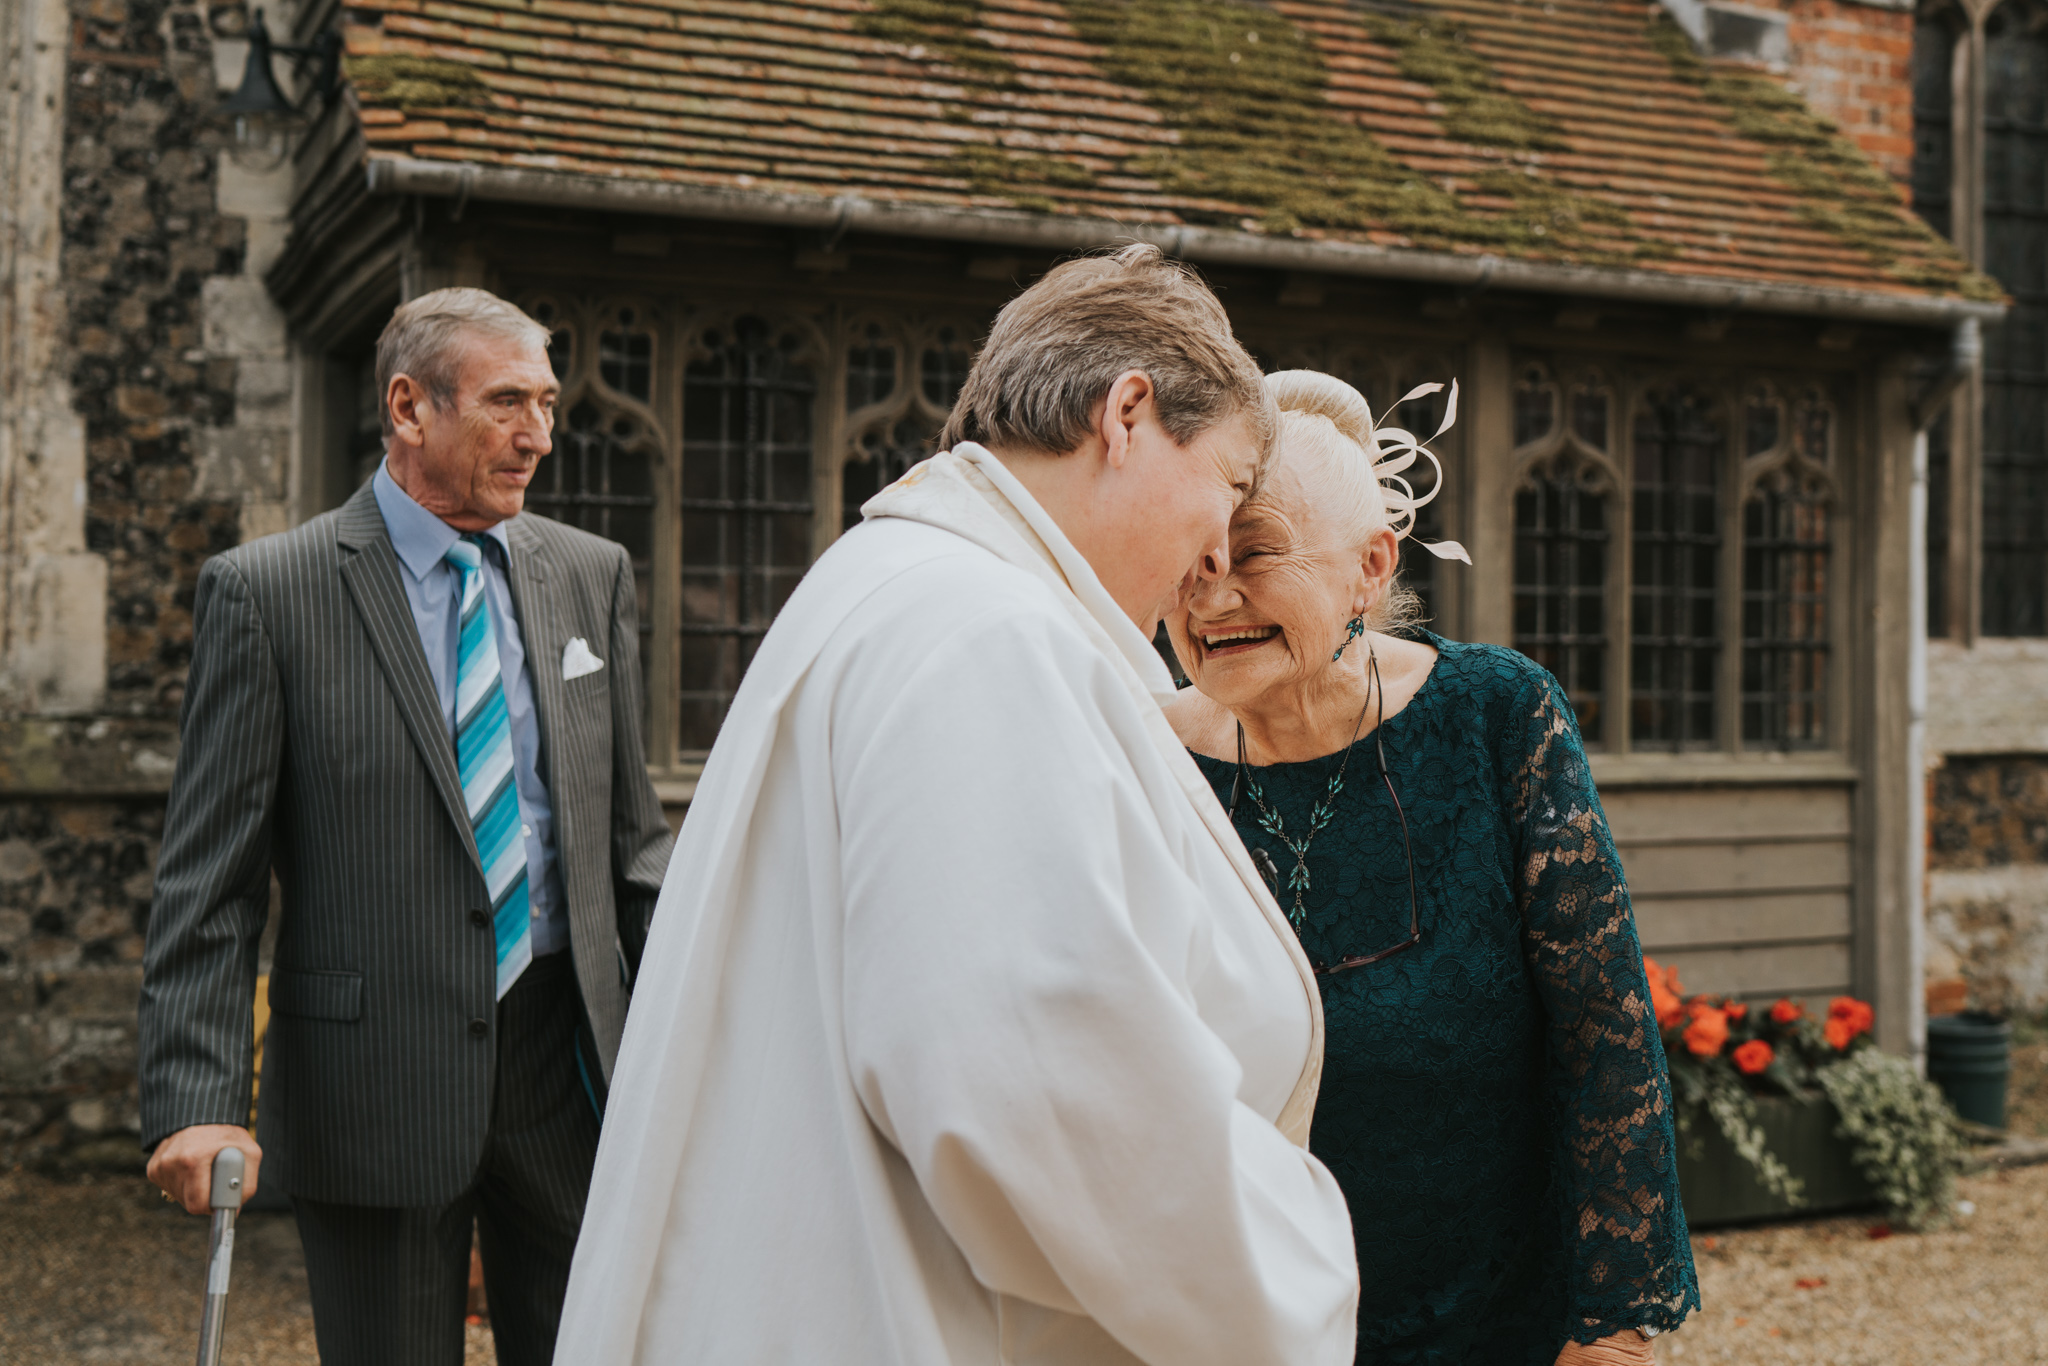 intimate-english-church-wedding-sarah-alex-colchester-essex-grace-elizabeth-colchester-essex-alternative-wedding-lifestyle-photographer-essex-suffolk-norfolk-devon (70 of 92).jpg